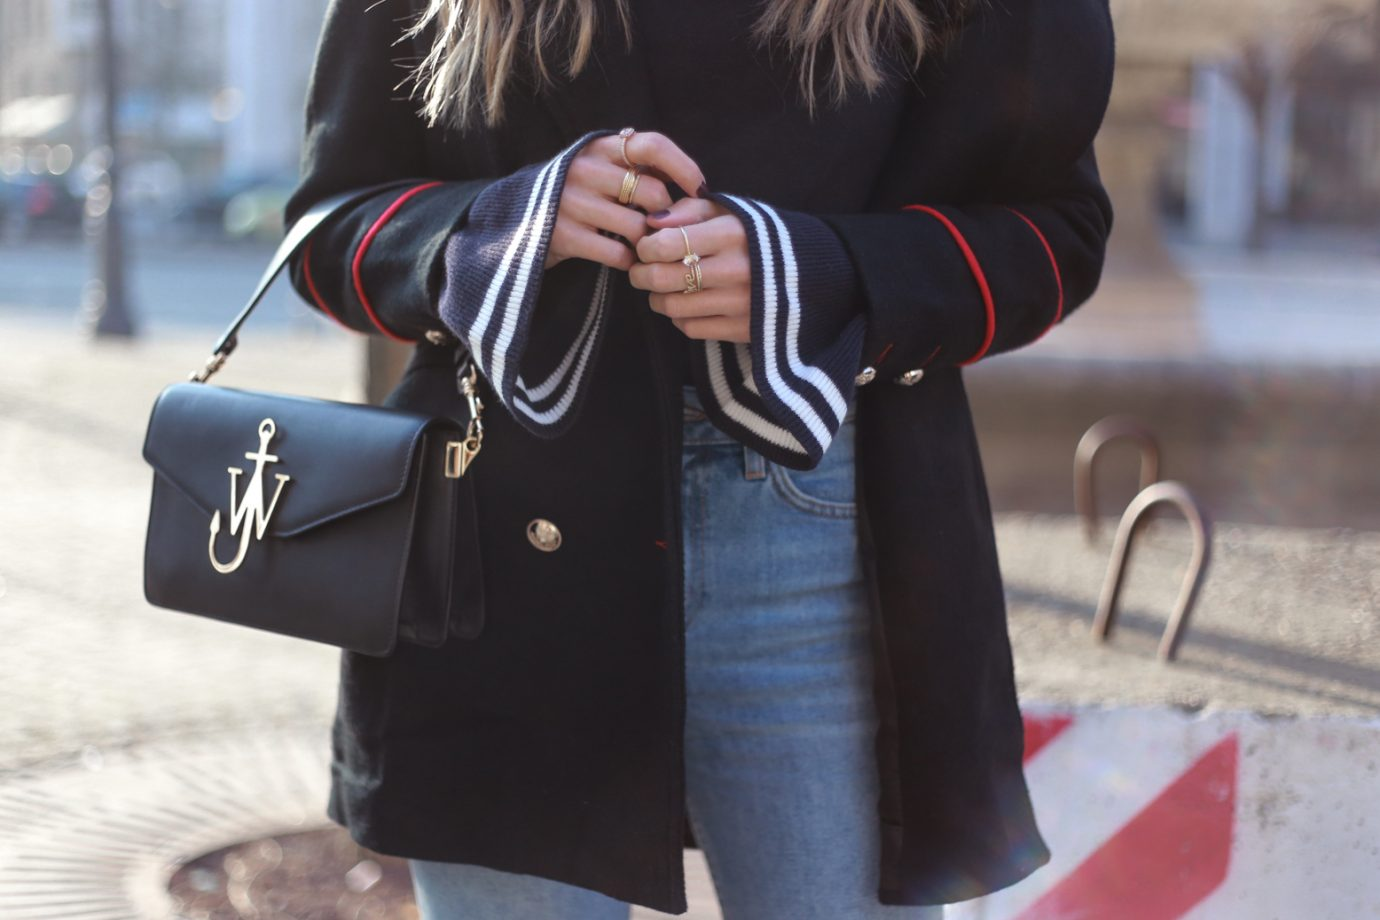 FLOUNCE CUFF SWEATER, J. W. ANDERSON BAG, GUCCI MULES